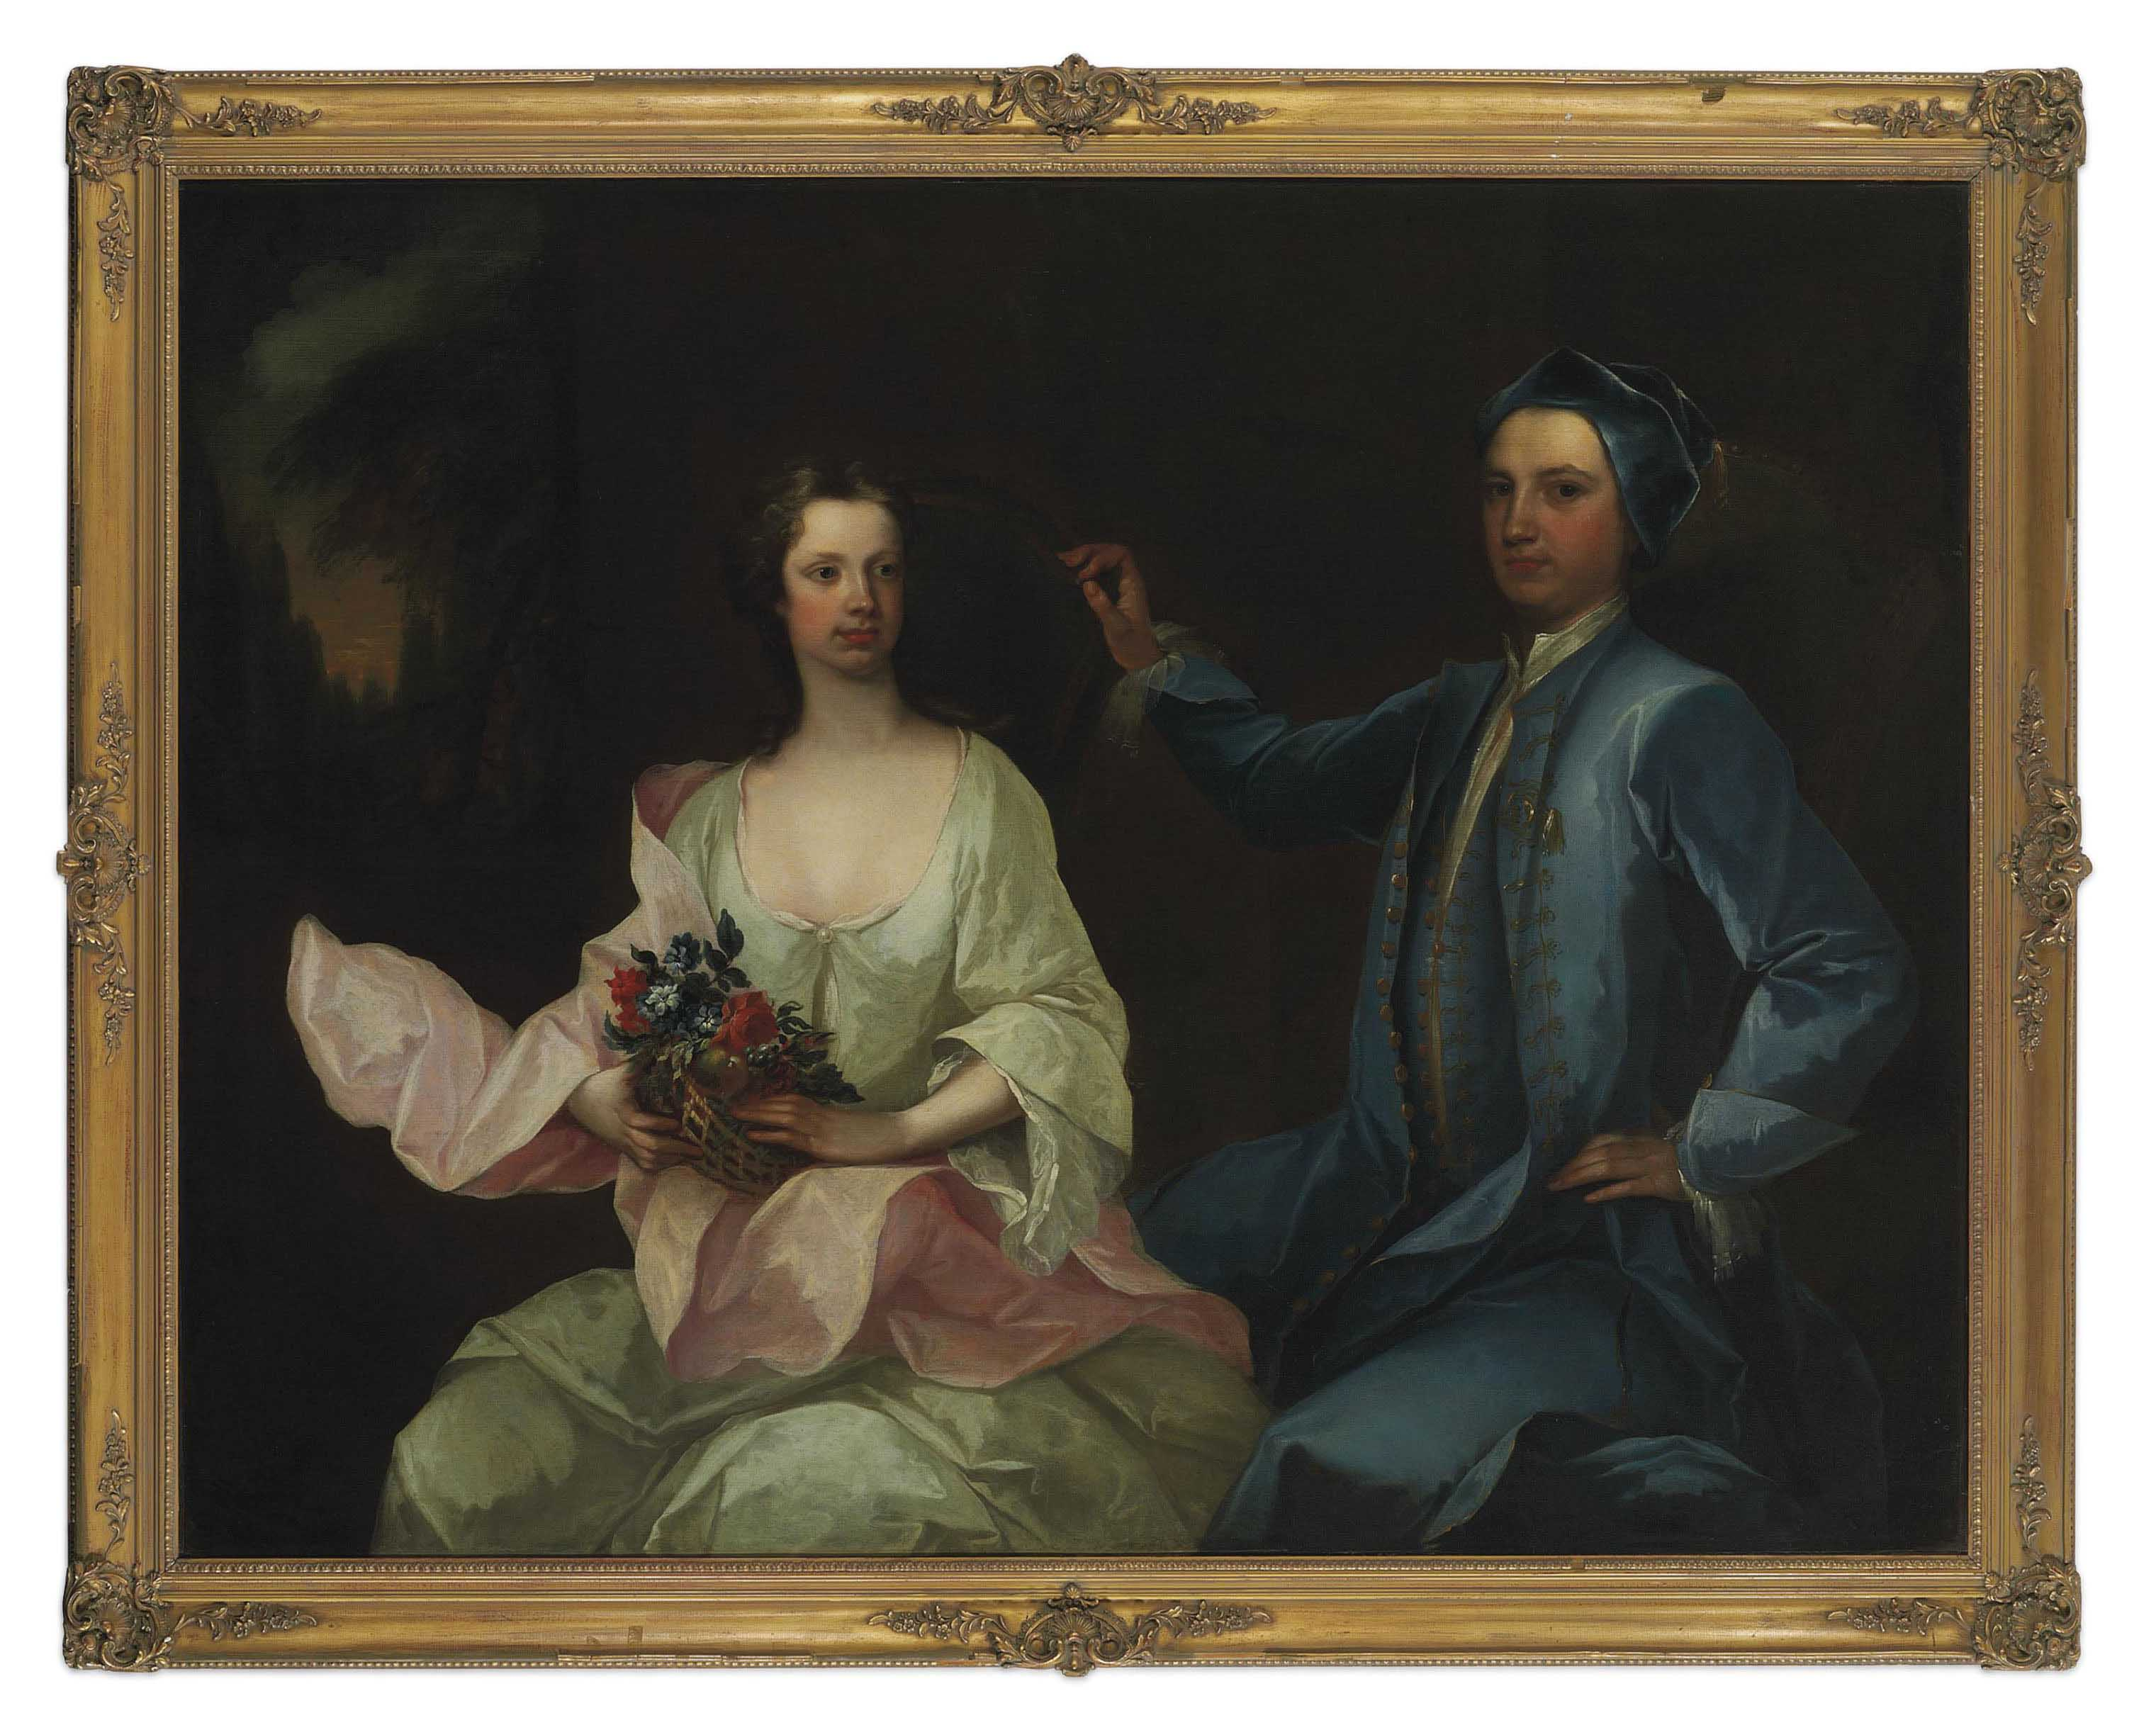 Double portrait of Robert Mason of Masonbrook, Loughrea, County Galway, and his wife Sara Monck